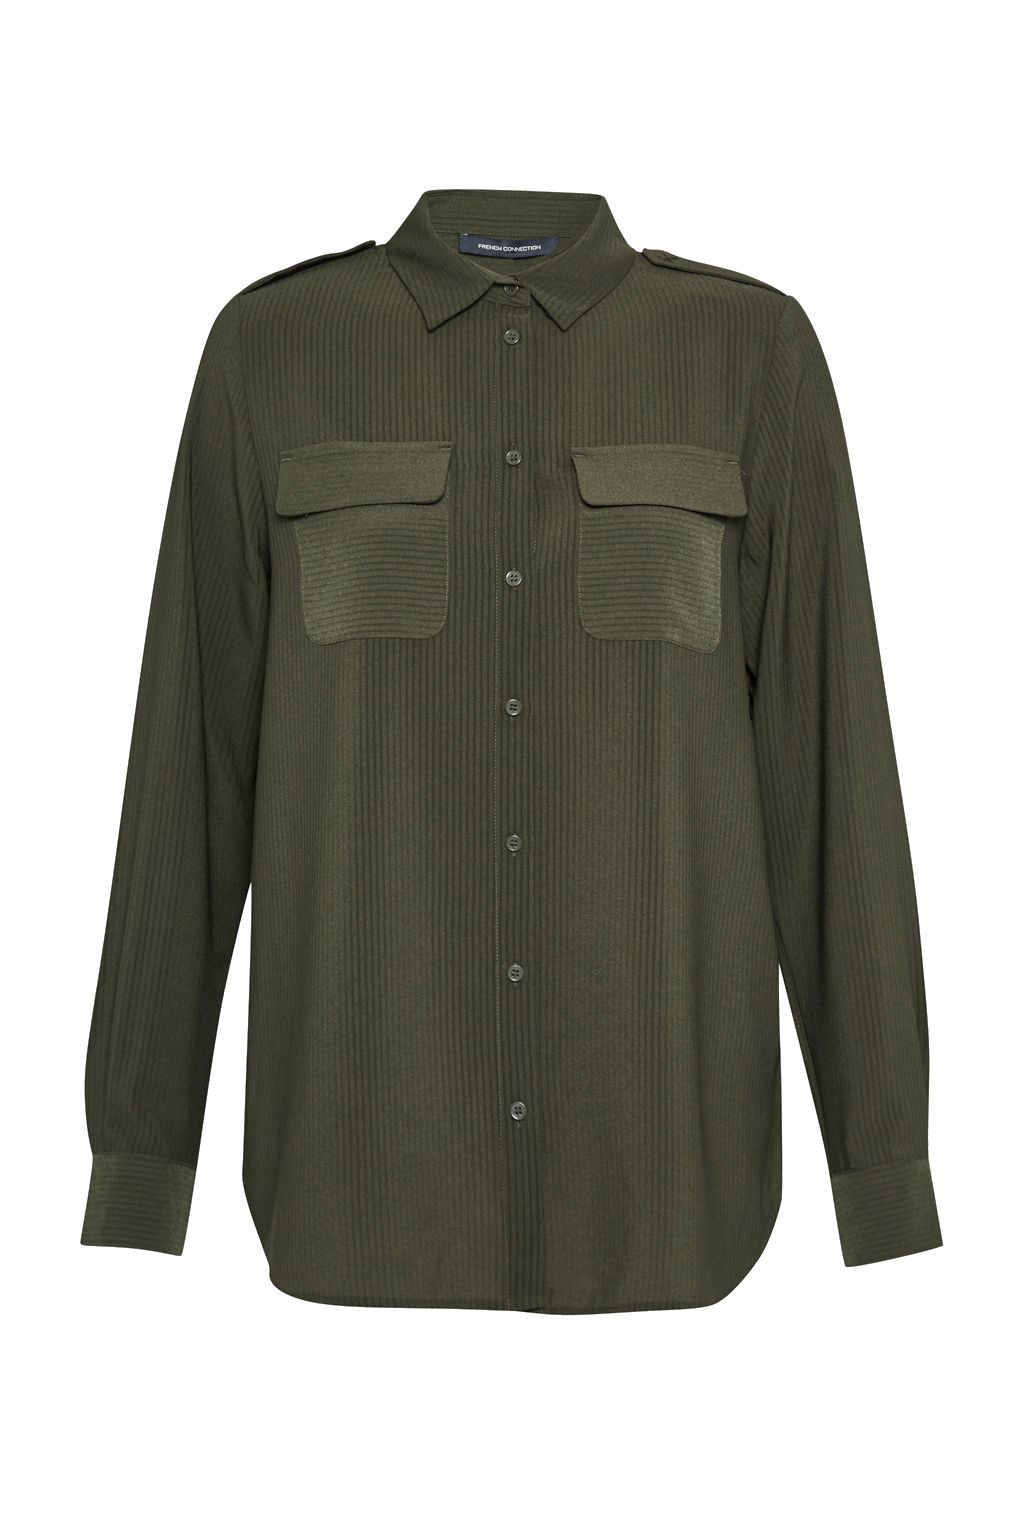 French Connection Pippa Plains Front Pockets Shirt, Green